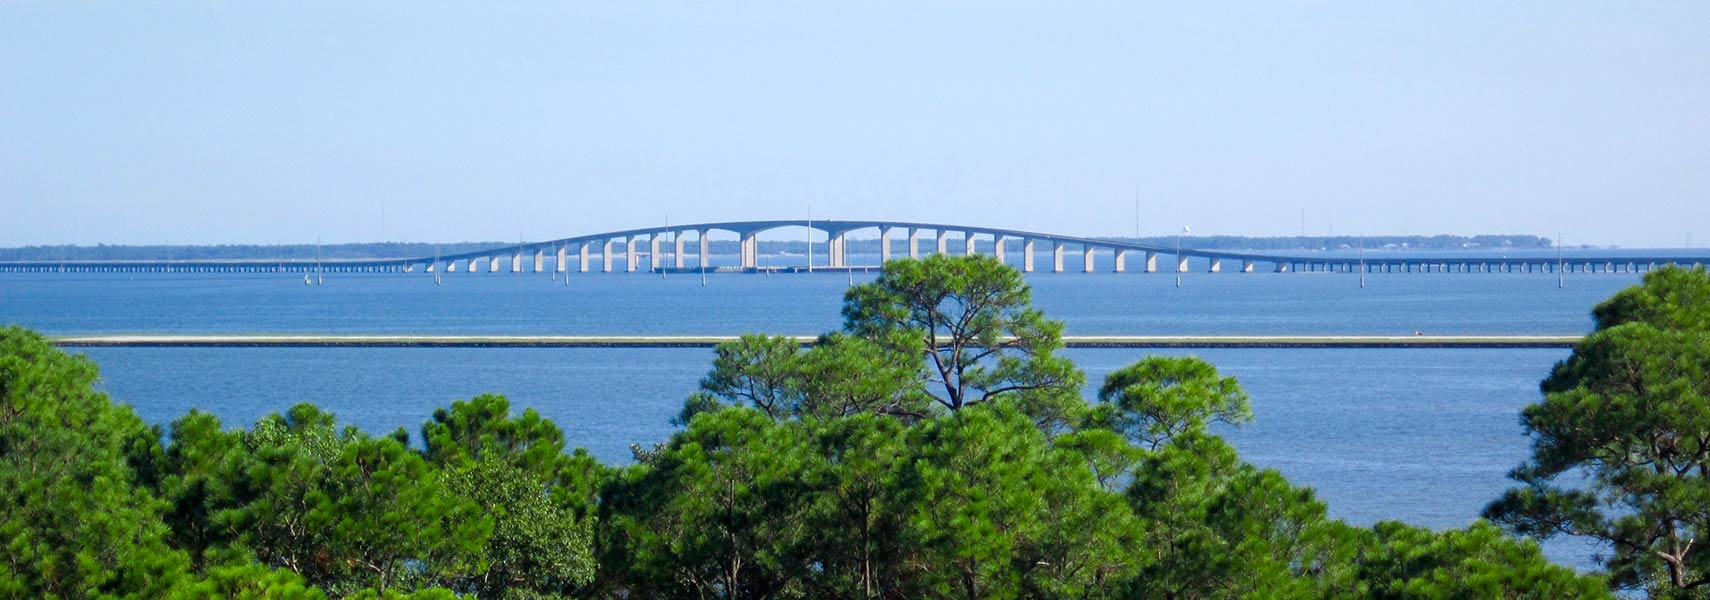 View of Dauphin Island Bridge across the Gulf Intracoastal Waterway